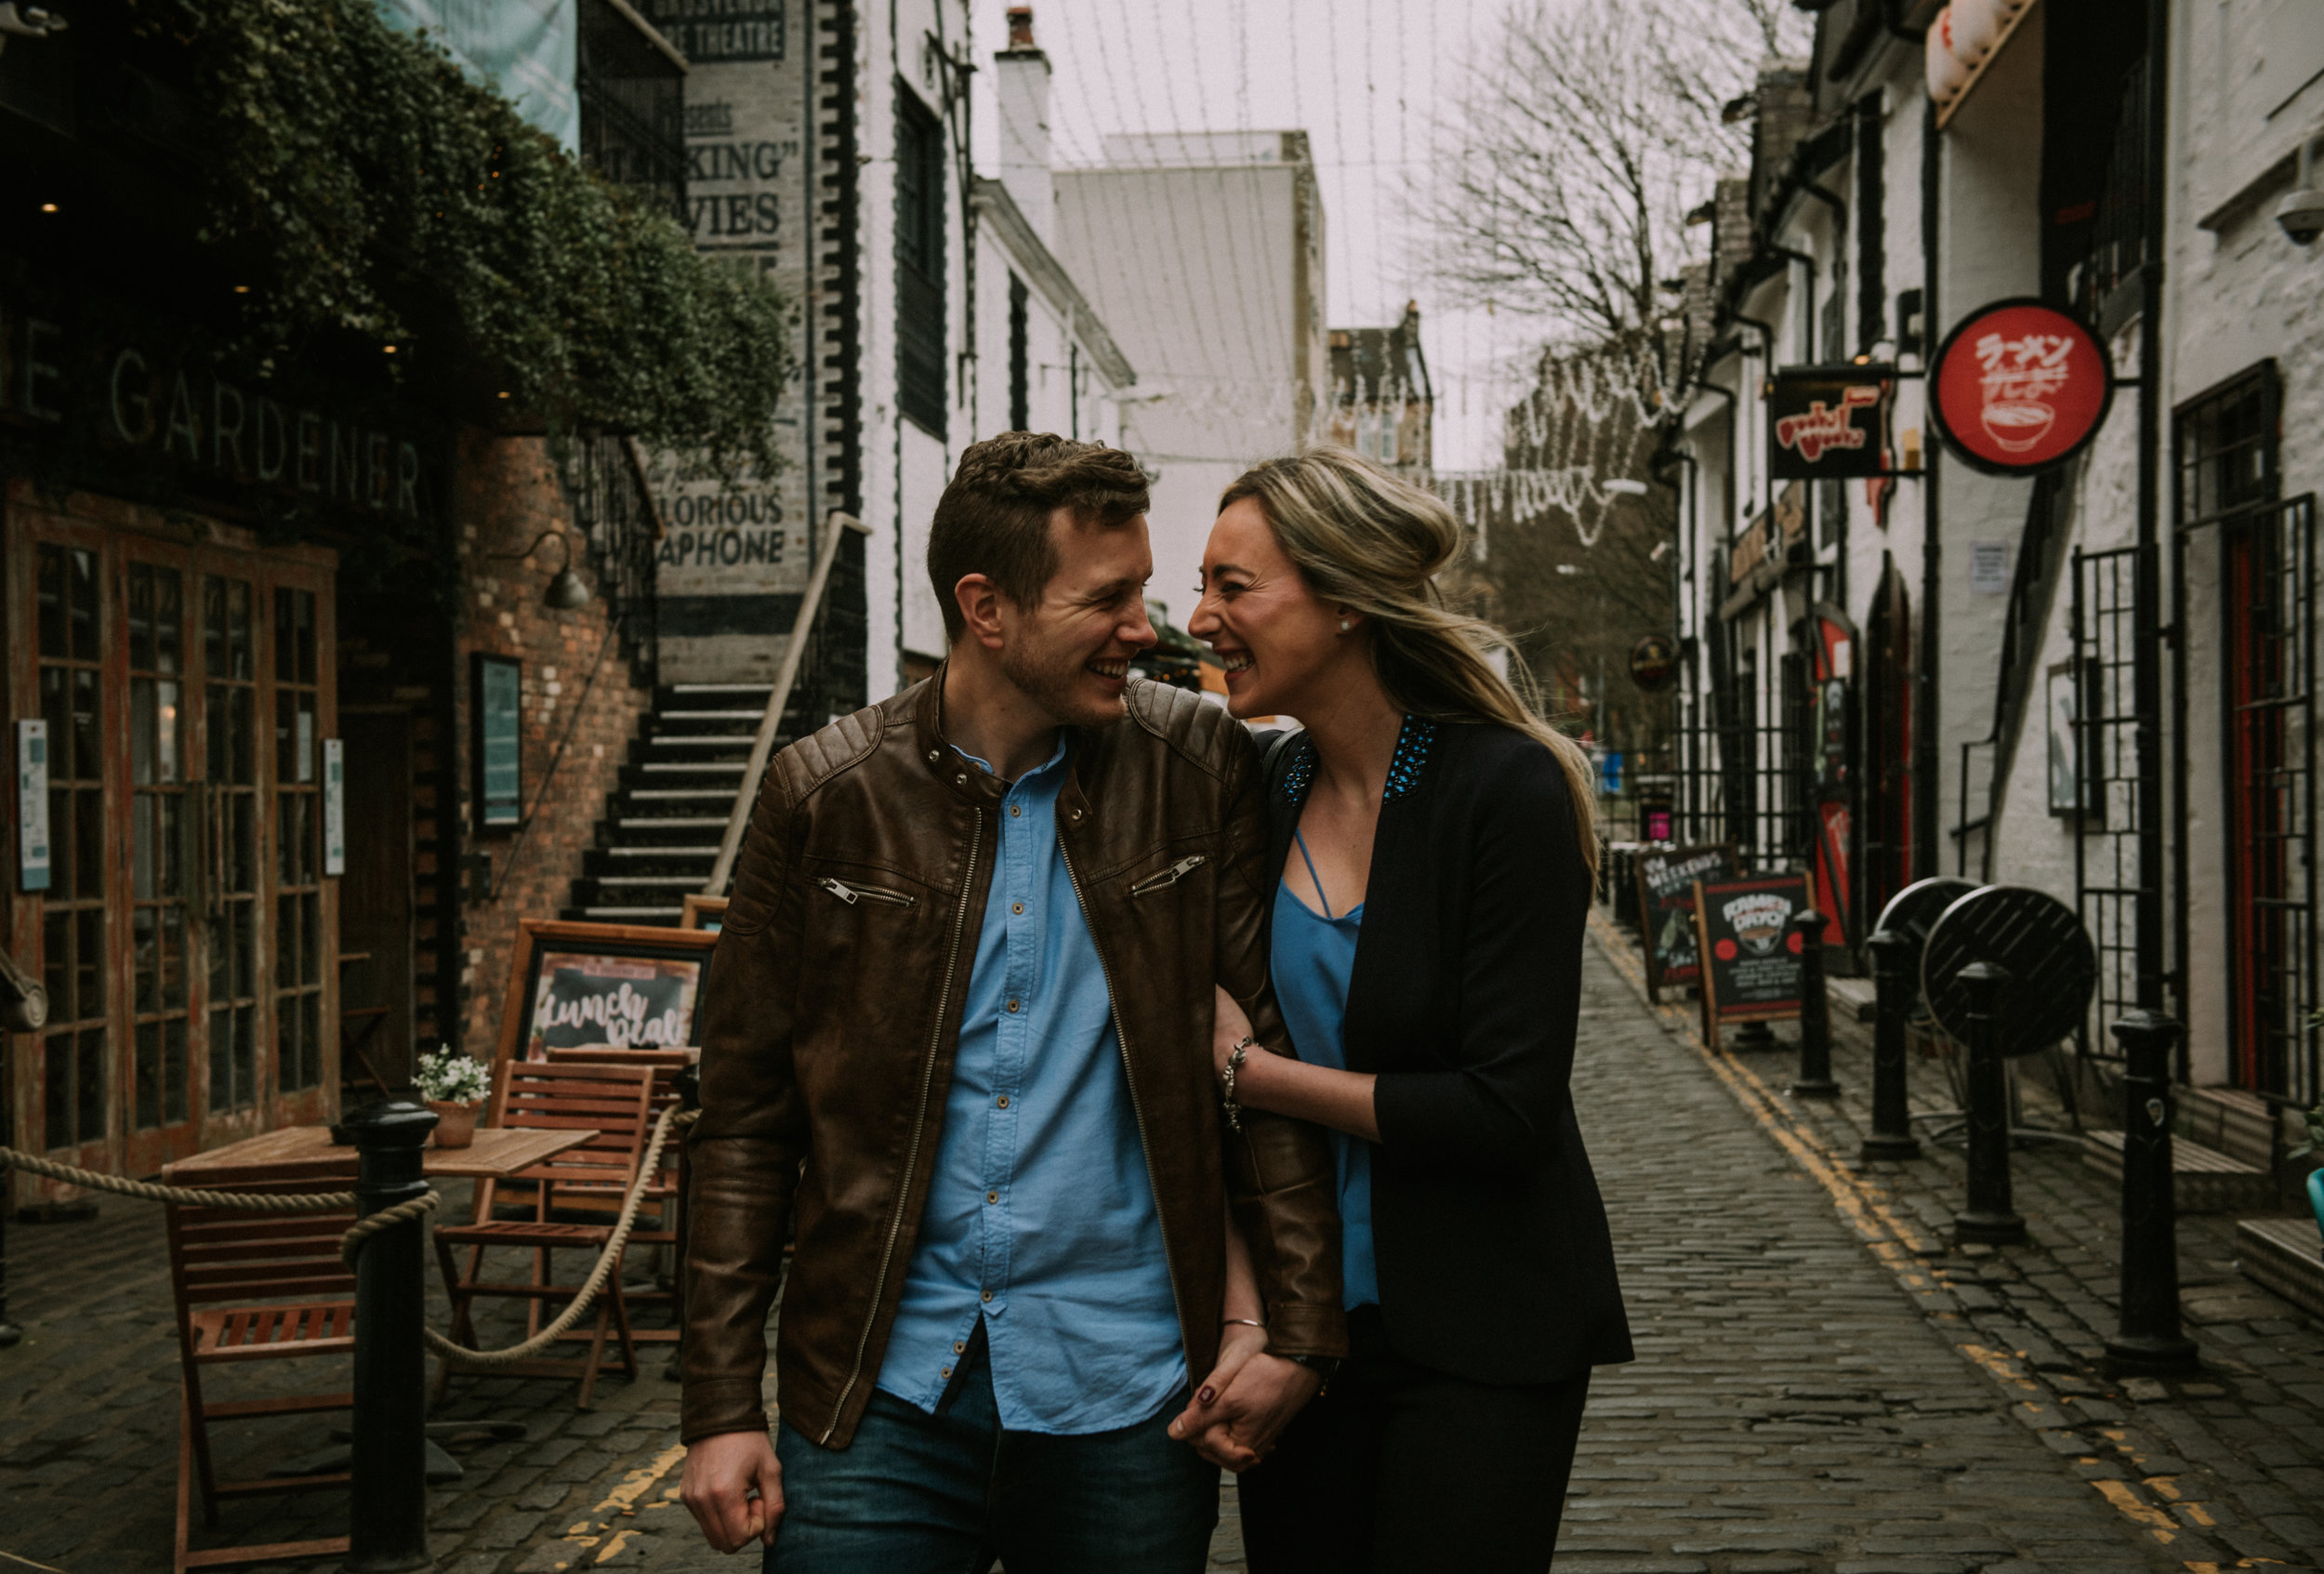 engagementshoot (8 of 12).jpg